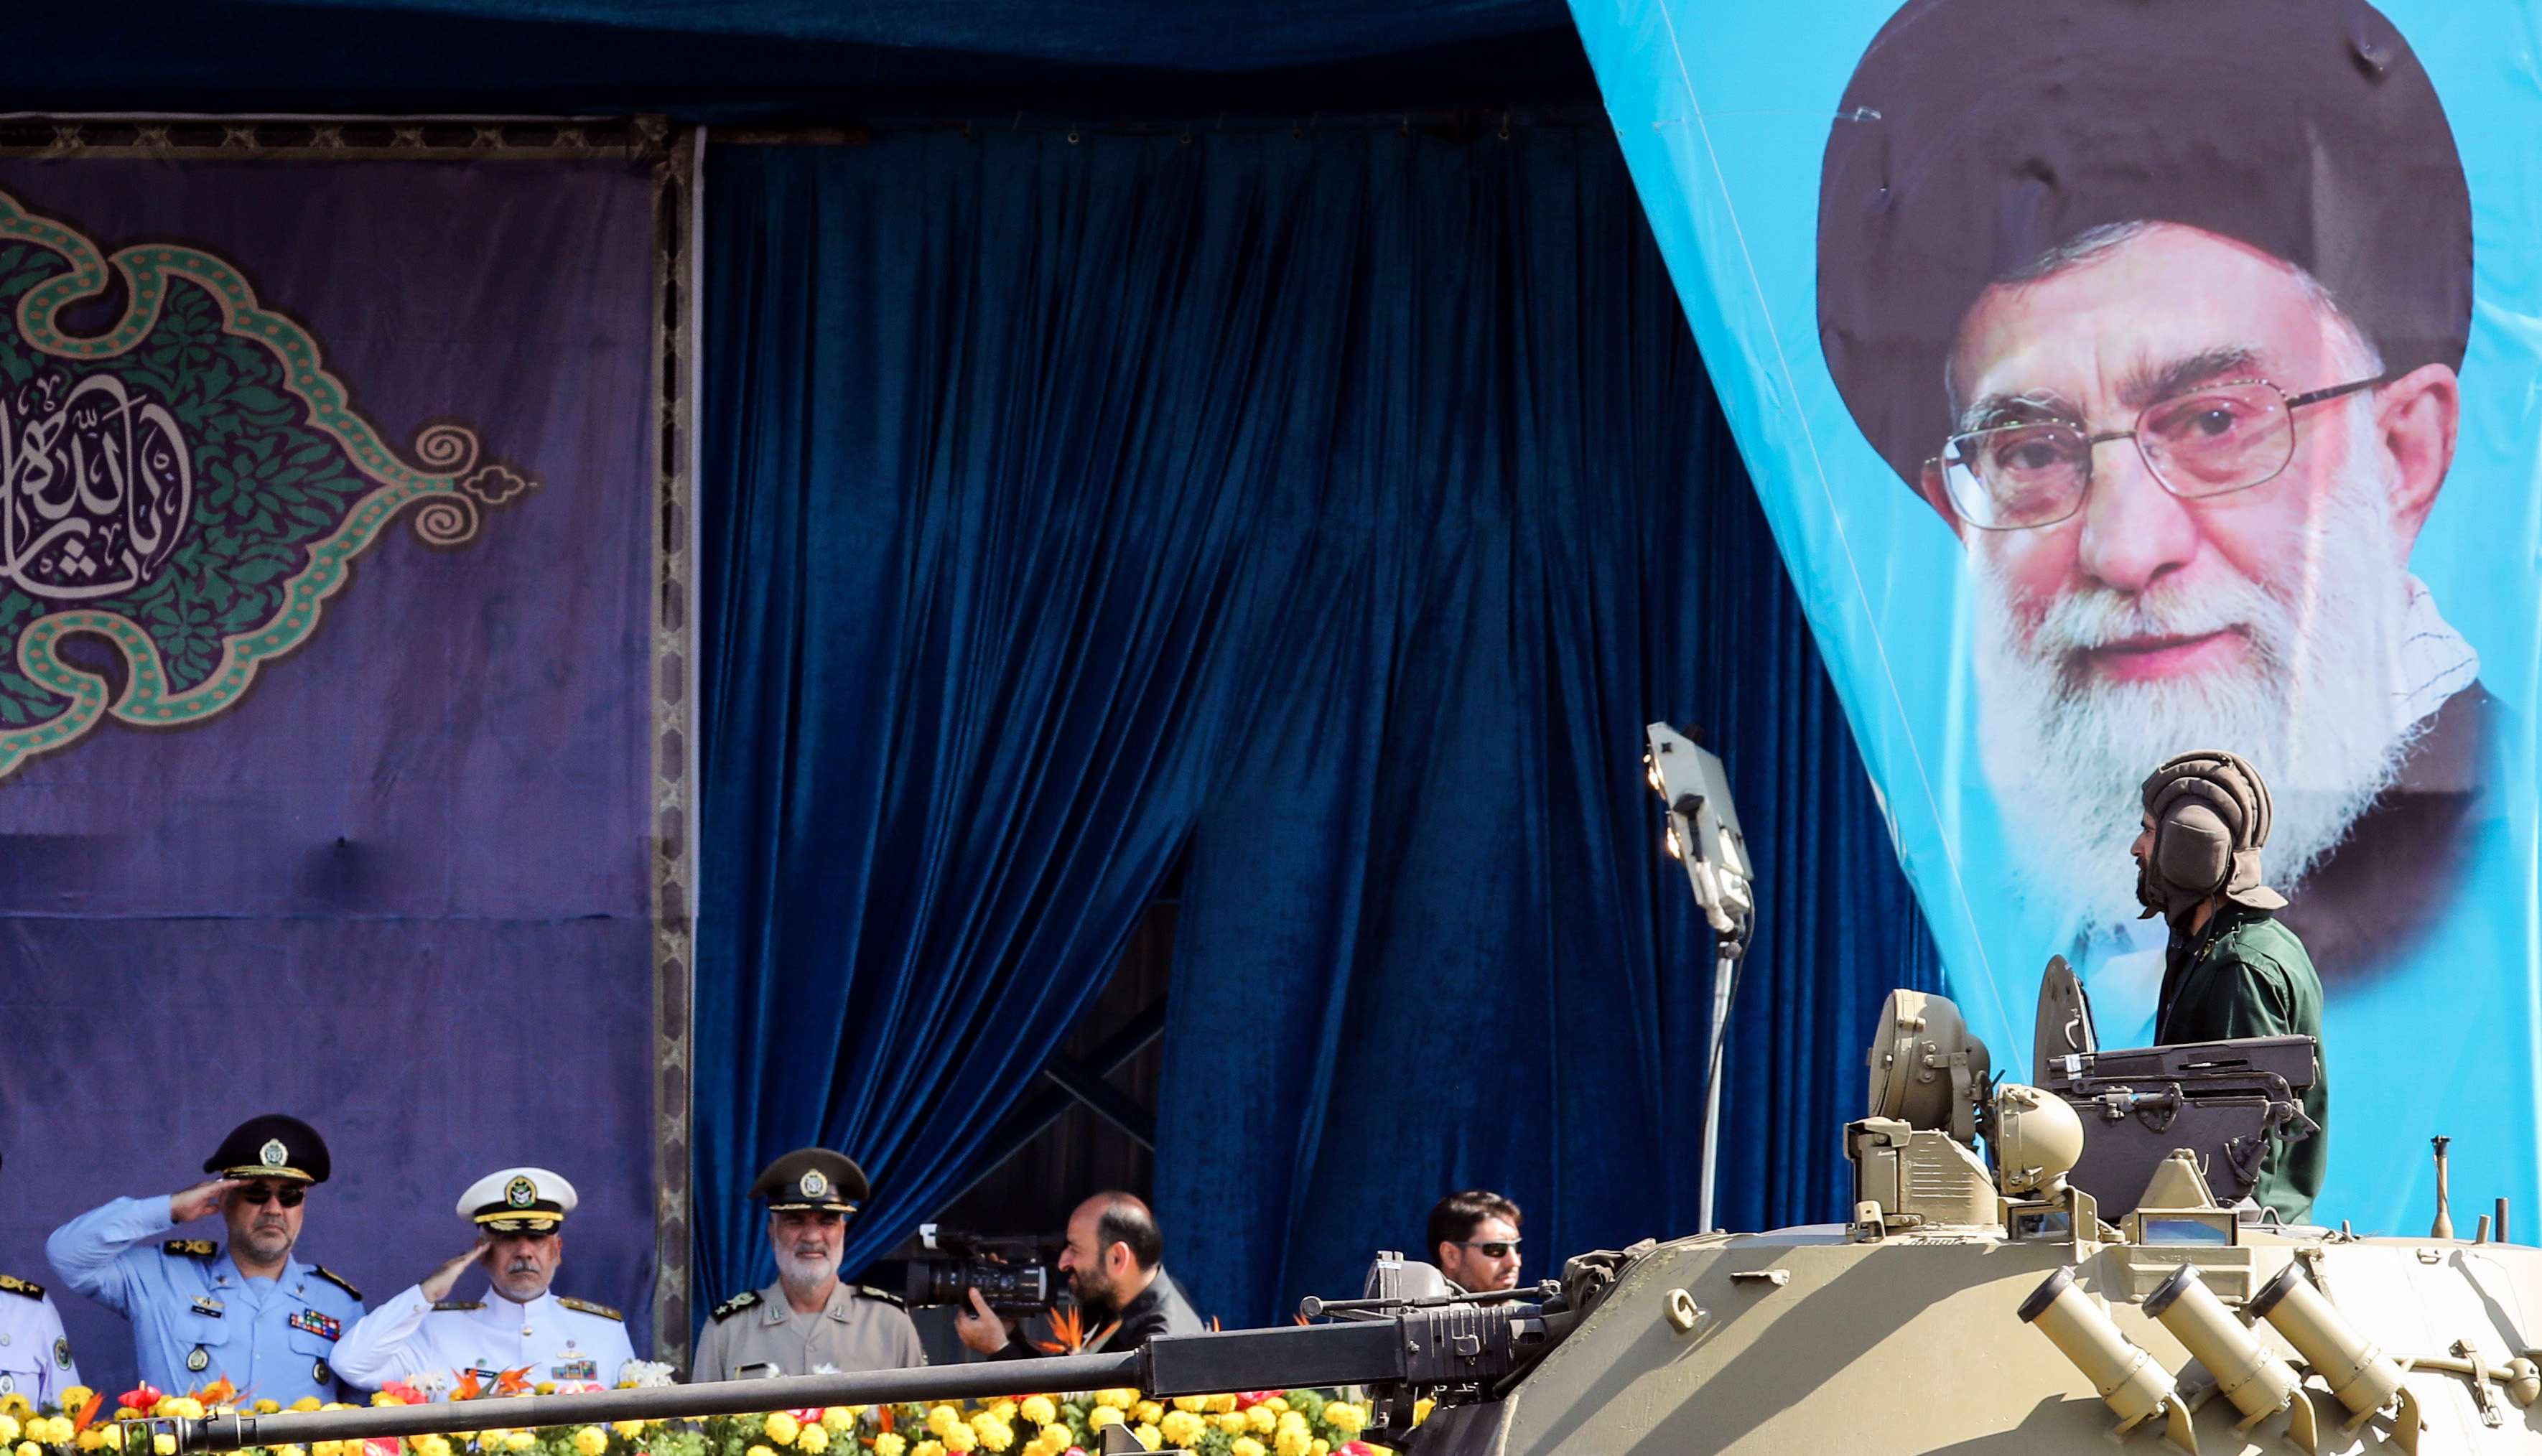 This picture taken on September 22, 2018 shows an Iranian soldier seated in the turret of a tank passing by a large poster of the country's Supreme Leader Ayatollah Ali Khamenei and a stand where the president is seated, during the annual military parade marking the anniversary of the outbreak of the devastating 1980-1988 war with Saddam Hussein's Iraq, in the capital Tehran. (STR/AFP/Getty Images)